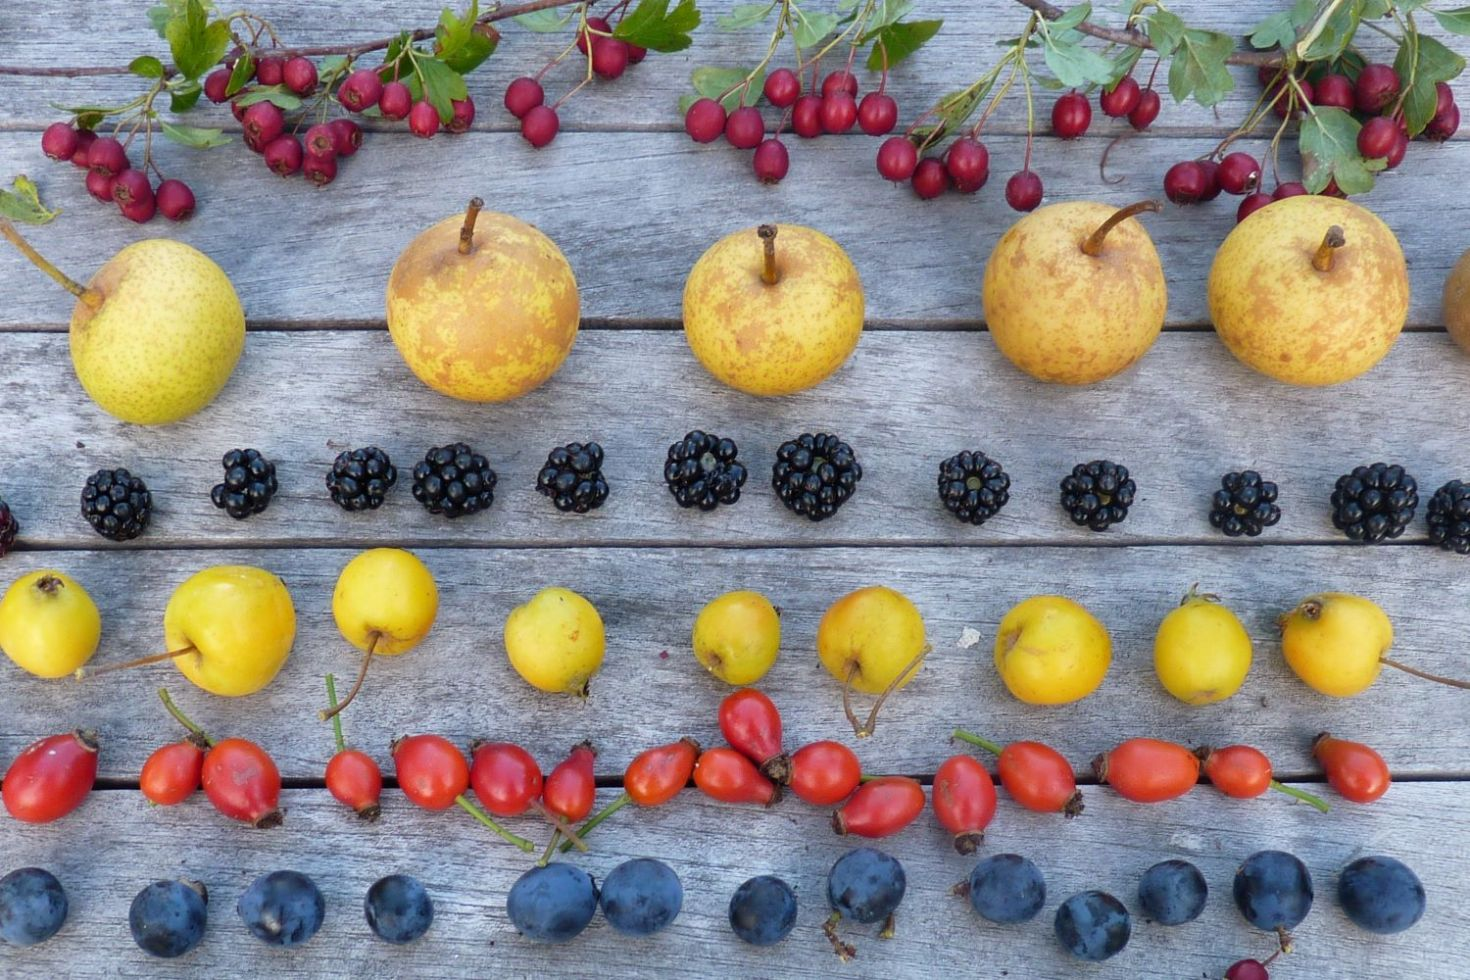 haws, wild pears, blackberries, crab apples, rosehips and sloes laid out on table